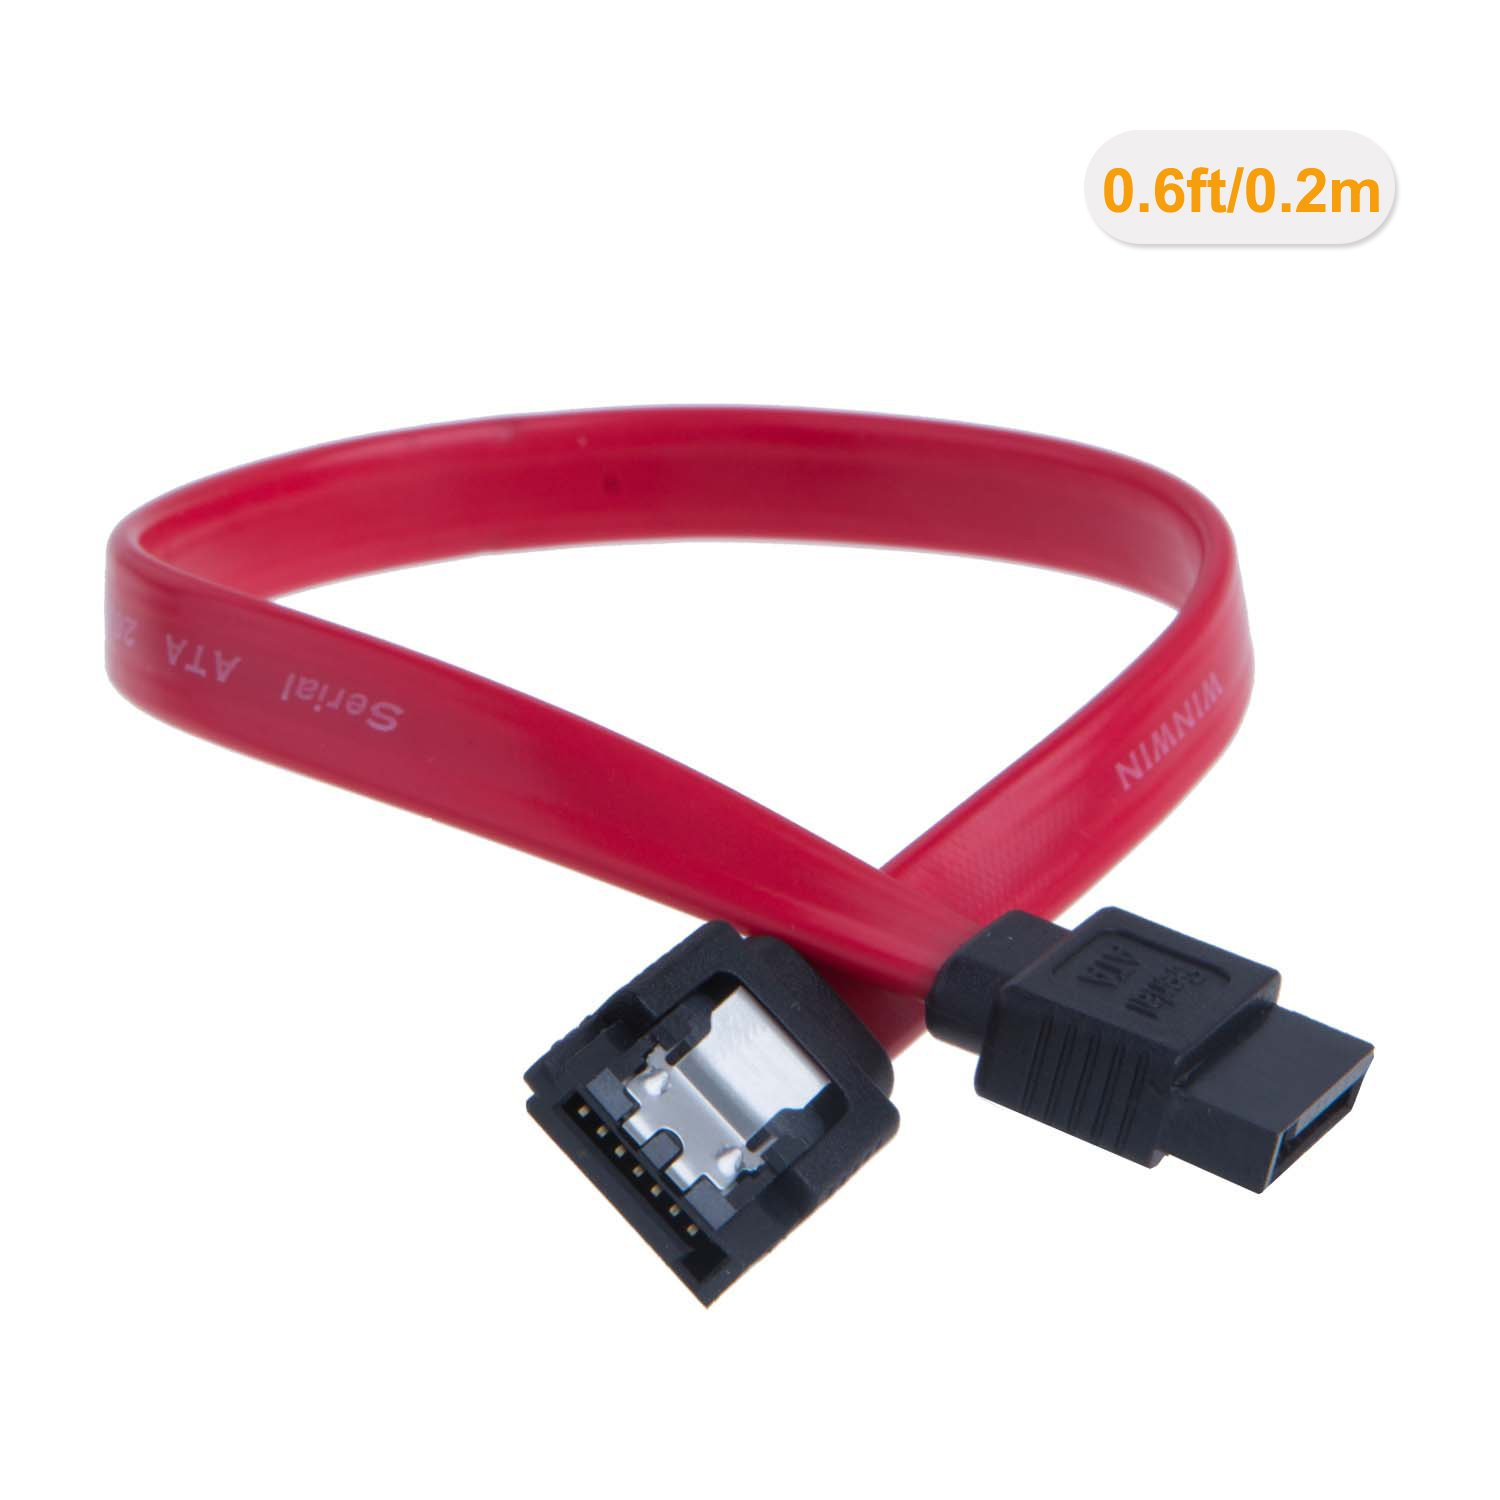 18-inch SATA III 6.0 Gbps 7pin Female to Female Data Cable with Locking Latch CableCreation SATA III Cable, Red 5-Pack